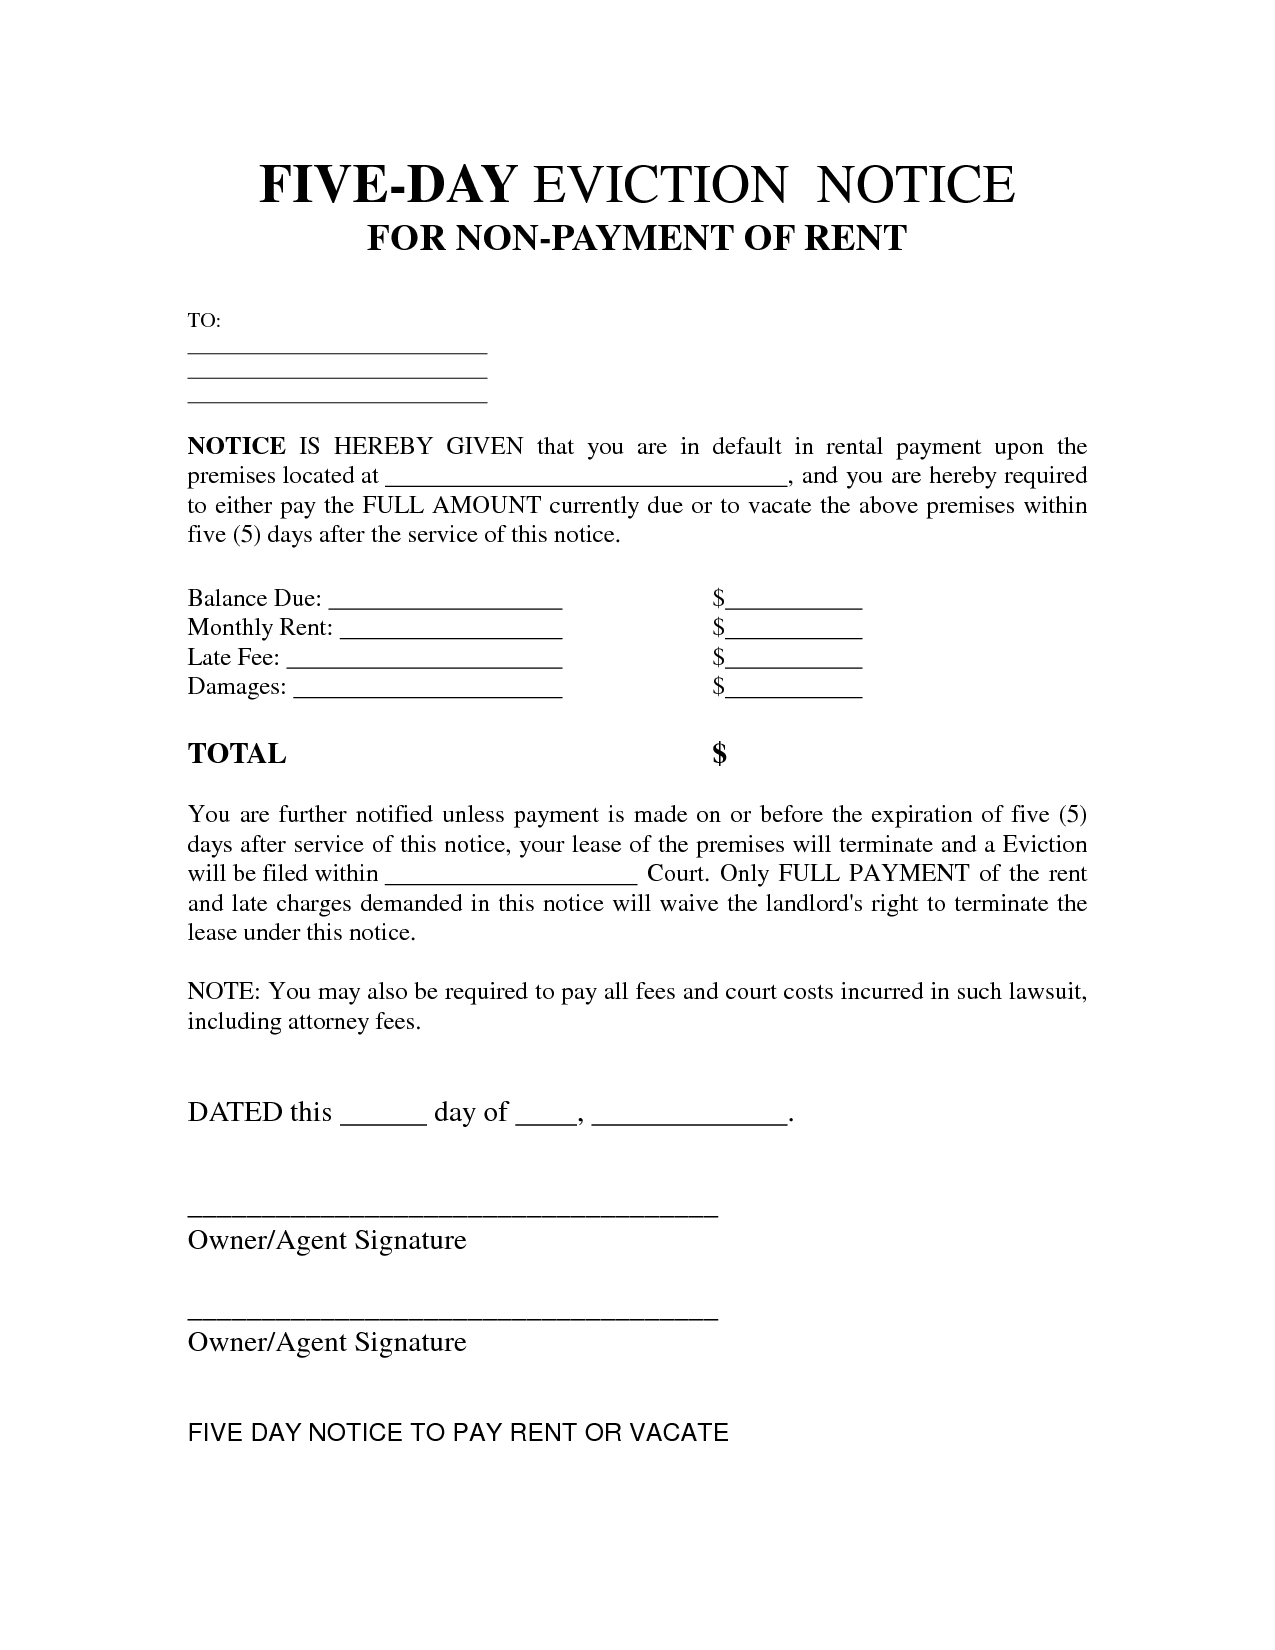 Free Printable Eviction Notice Letter | Bagnas - 5 Day Eviction - Free Printable 3 Day Eviction Notice